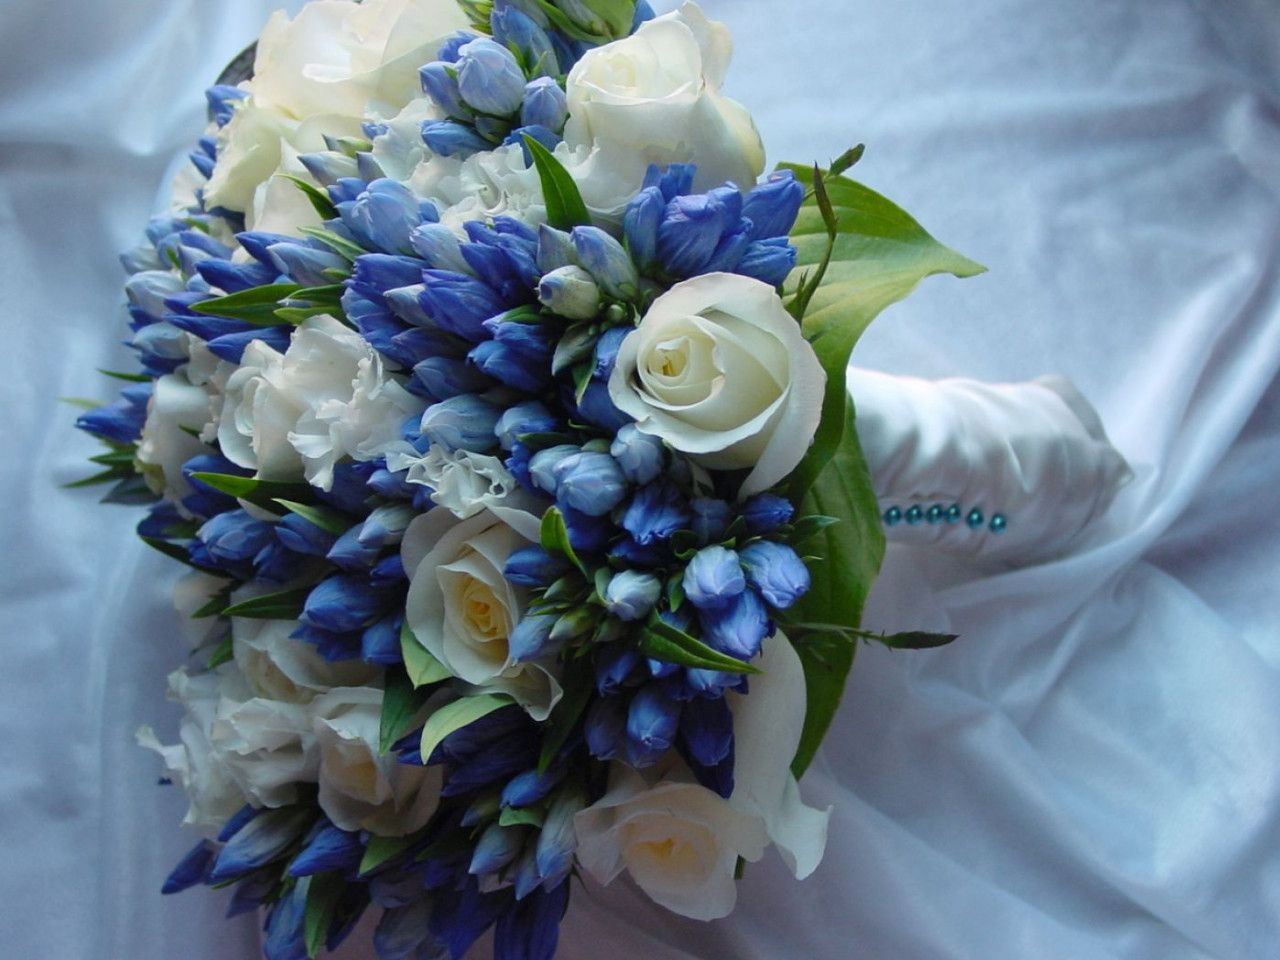 Svatebn kytice modr kvtiny sany wd bouquet pinterest anyone tell me what these blue flowers are and if they bloom in different colors blue wedding flowers and bouquets event planning izmirmasajfo Images